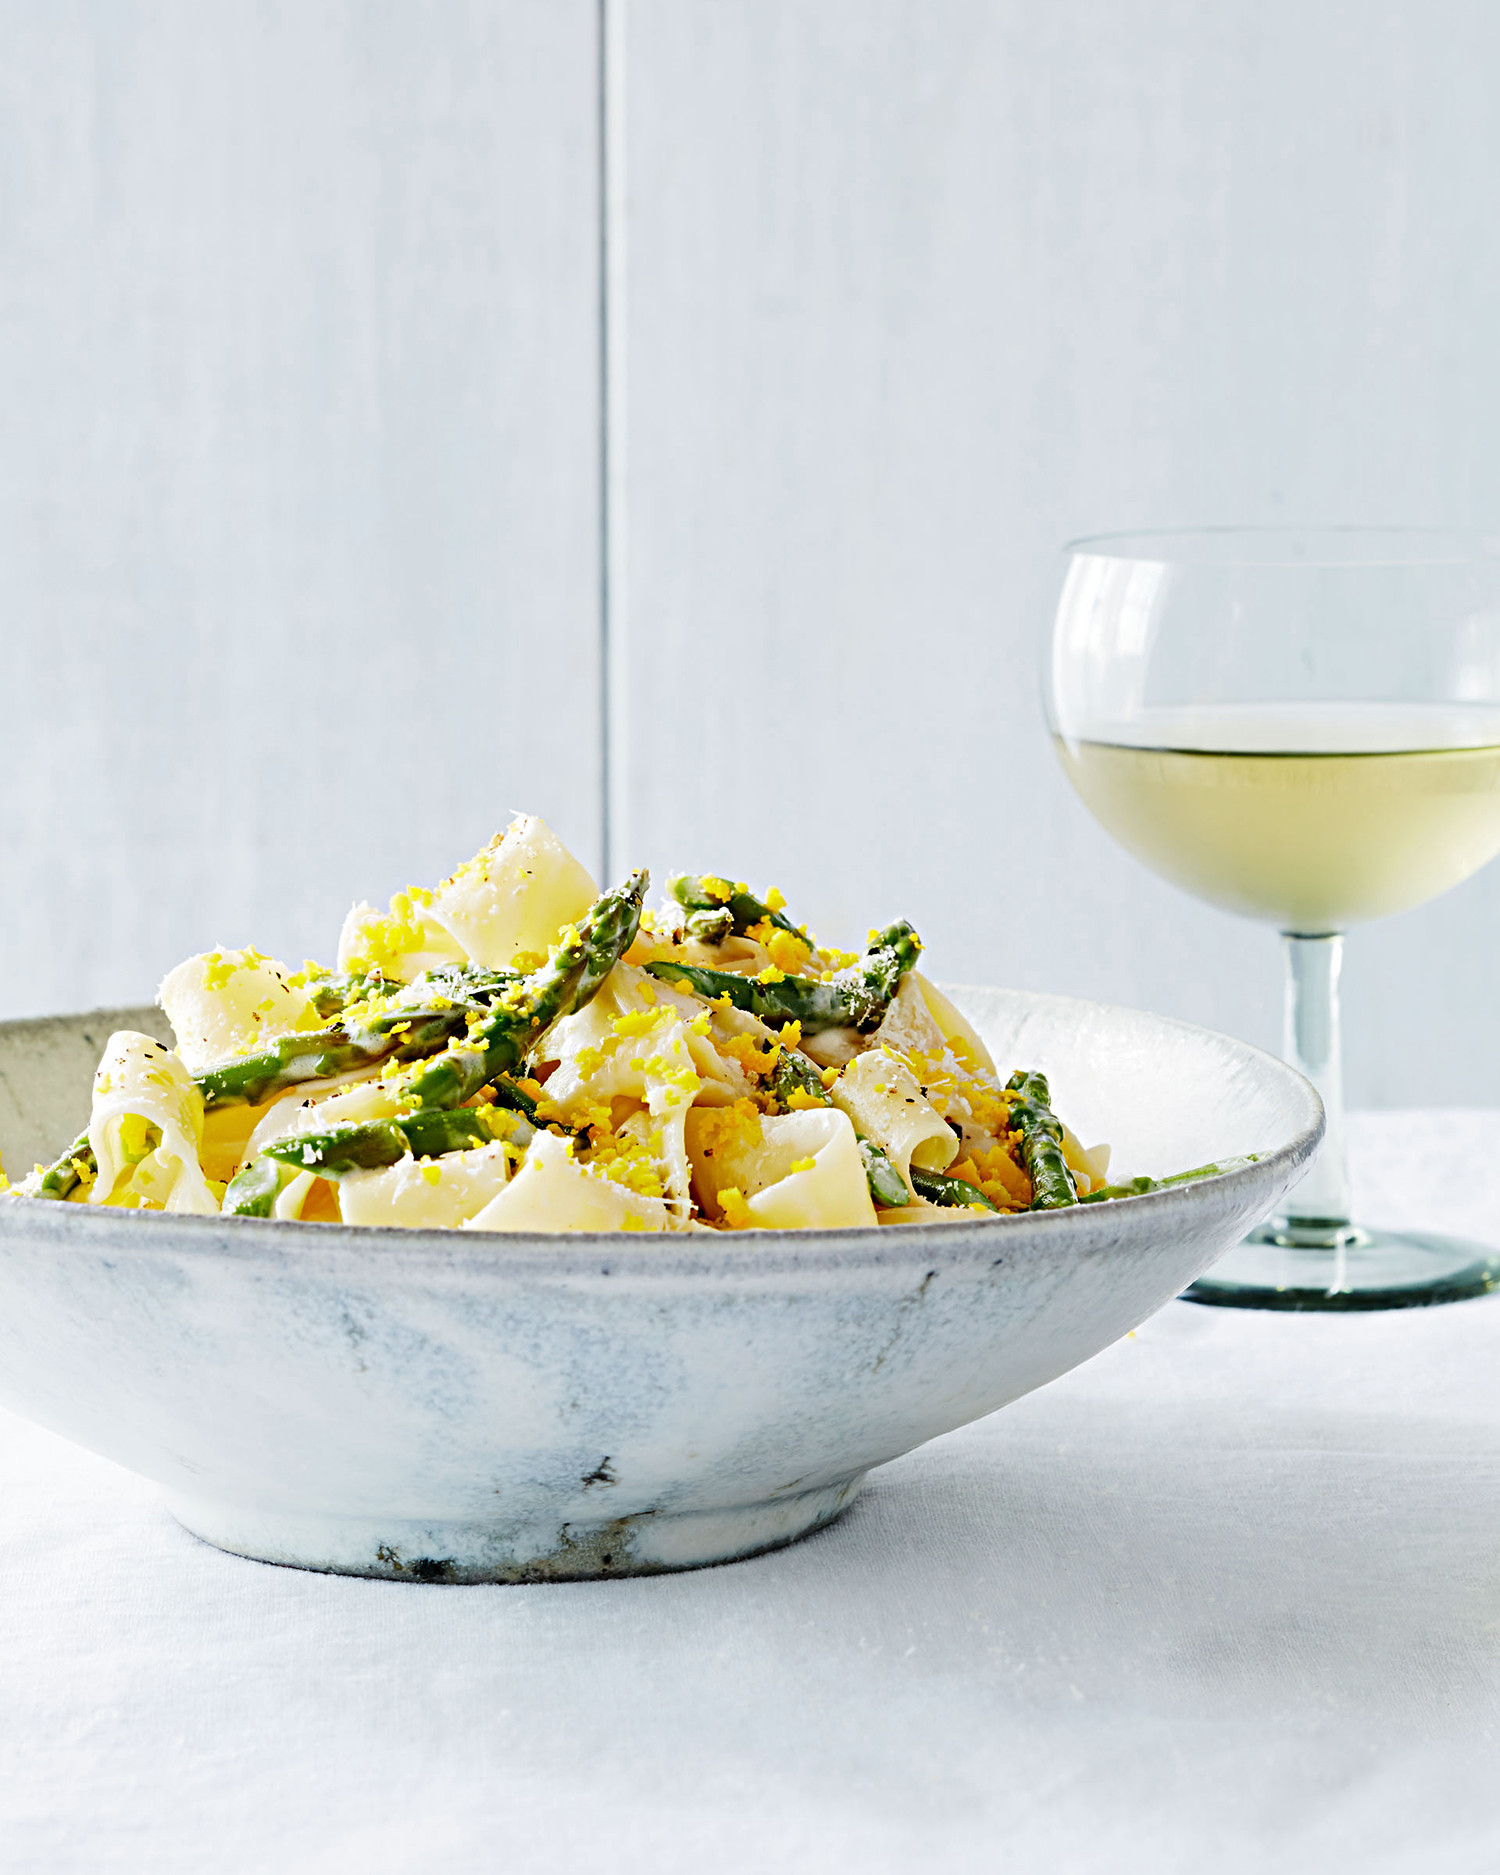 Egg Noodles with Asparagus and Grated Egg Yolks